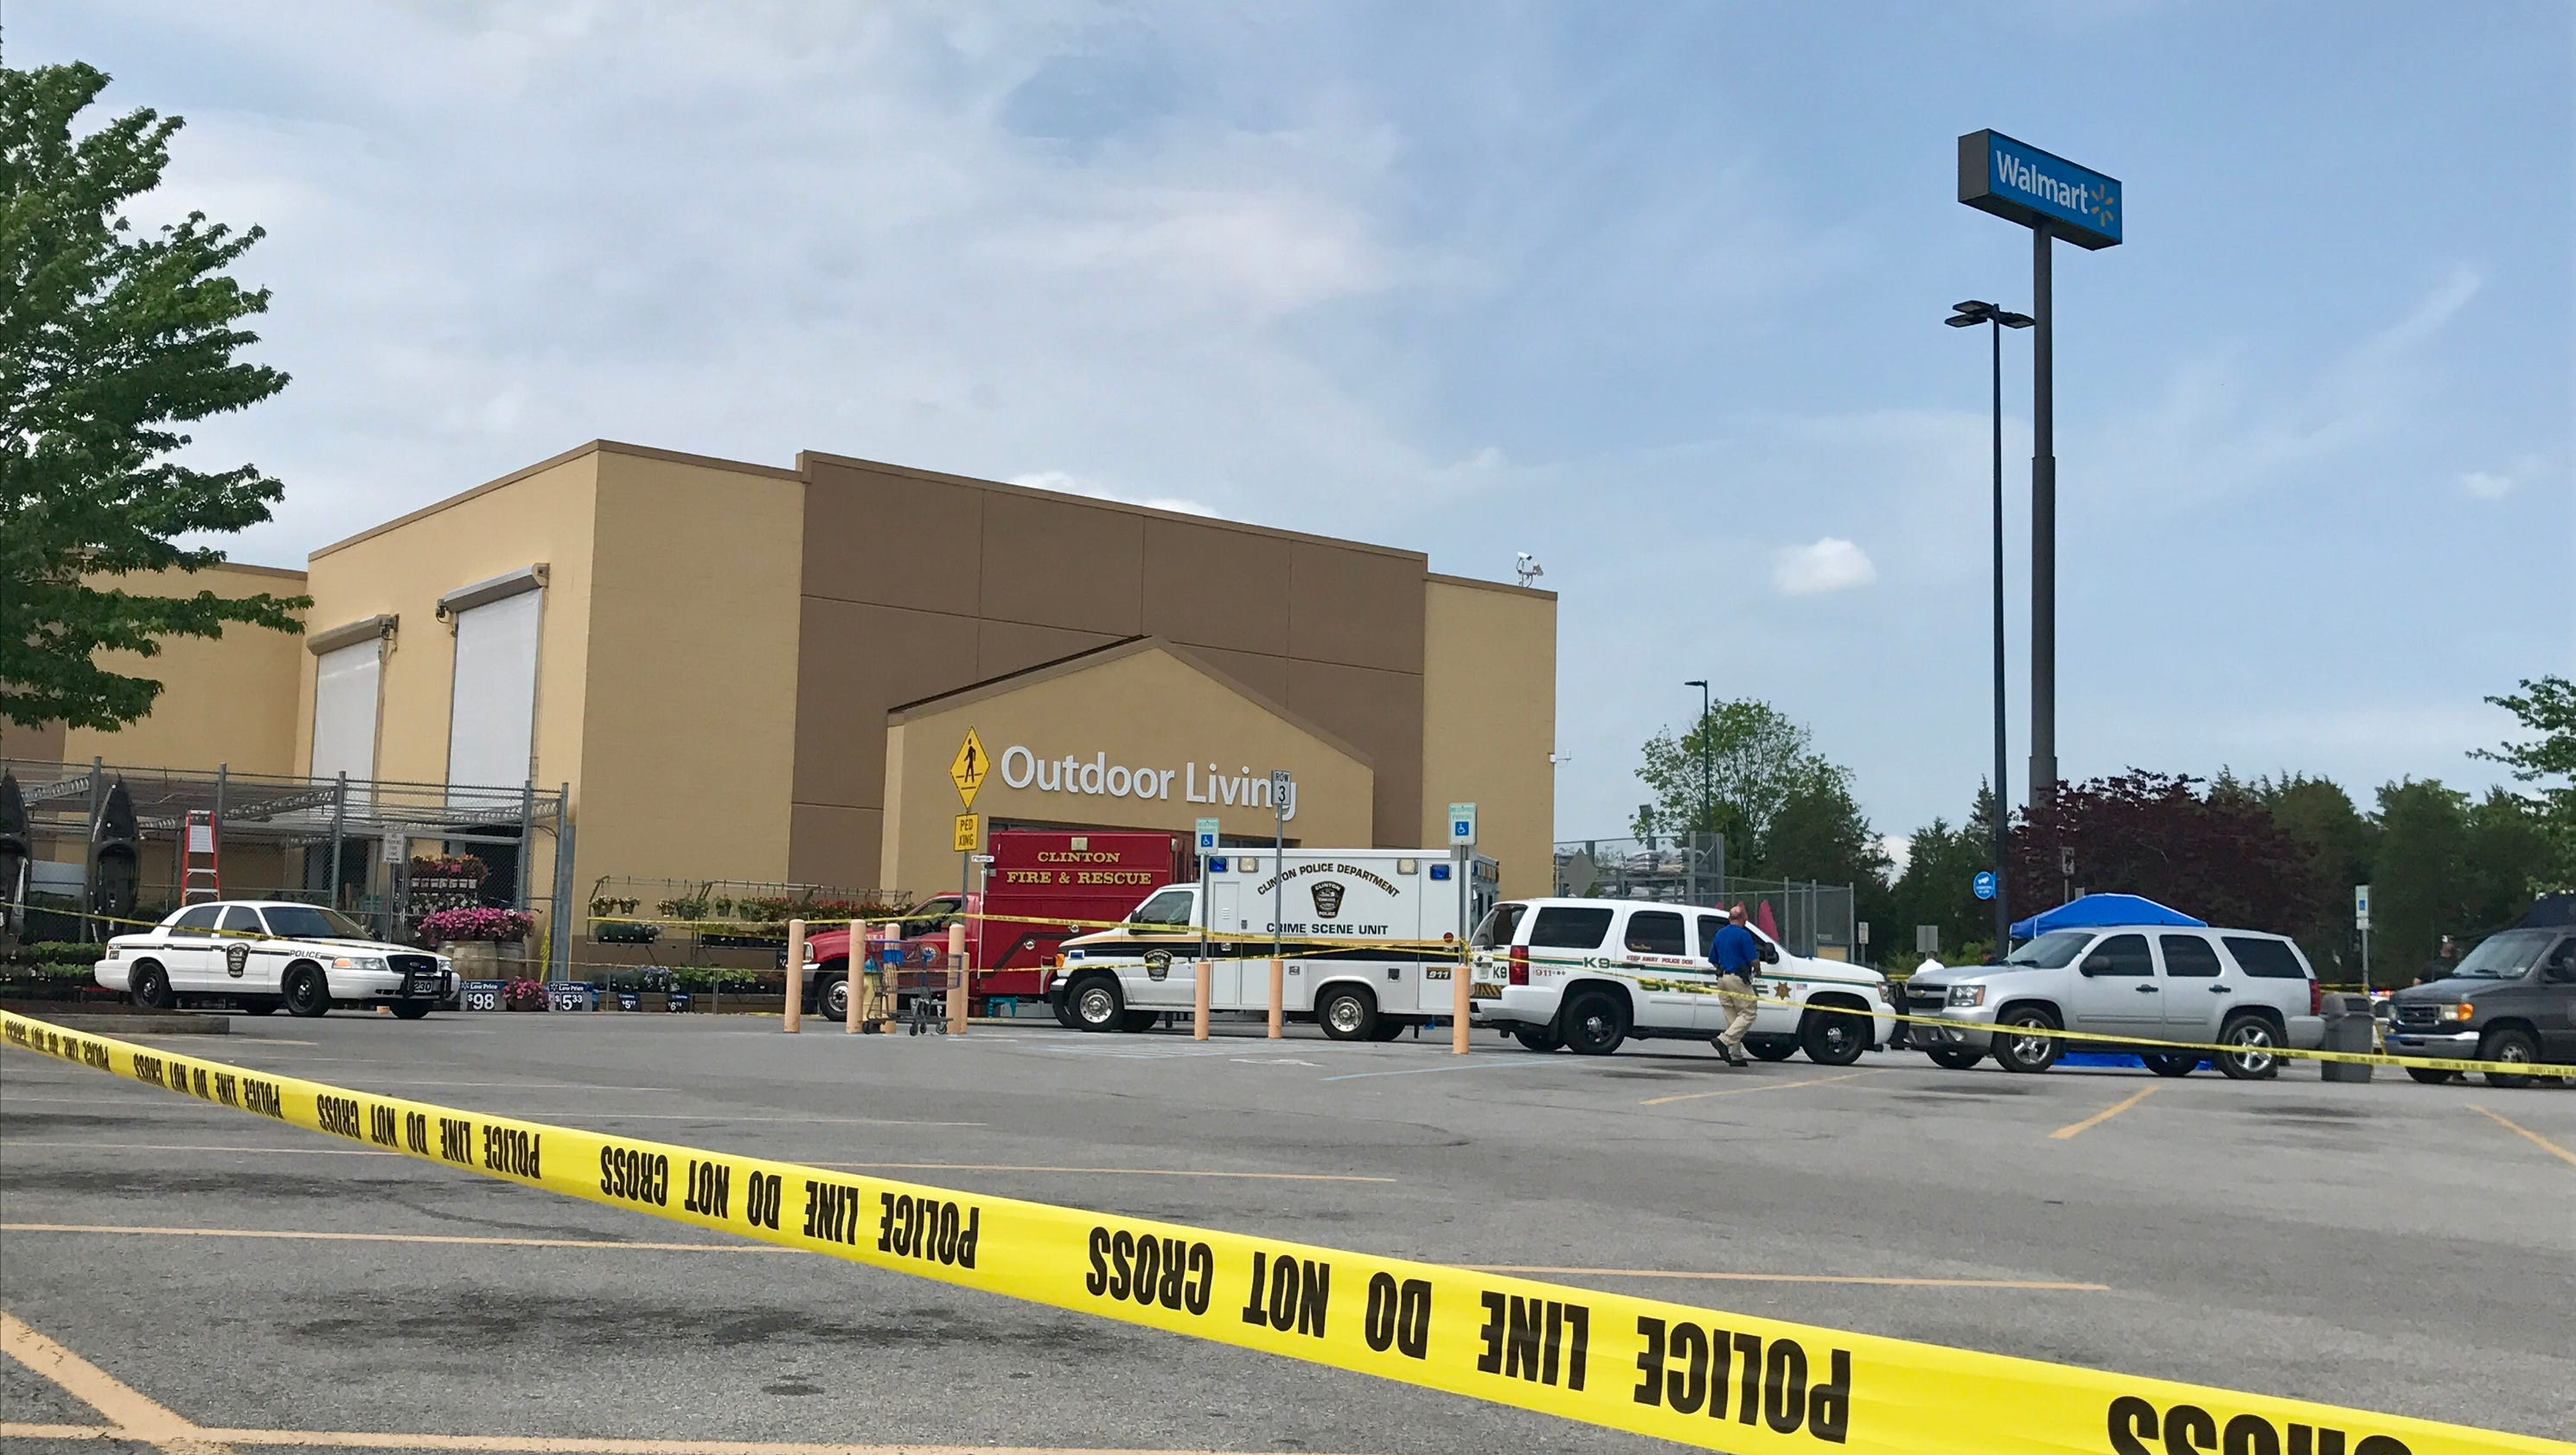 suspect in clinton walmart shooting released after questioning